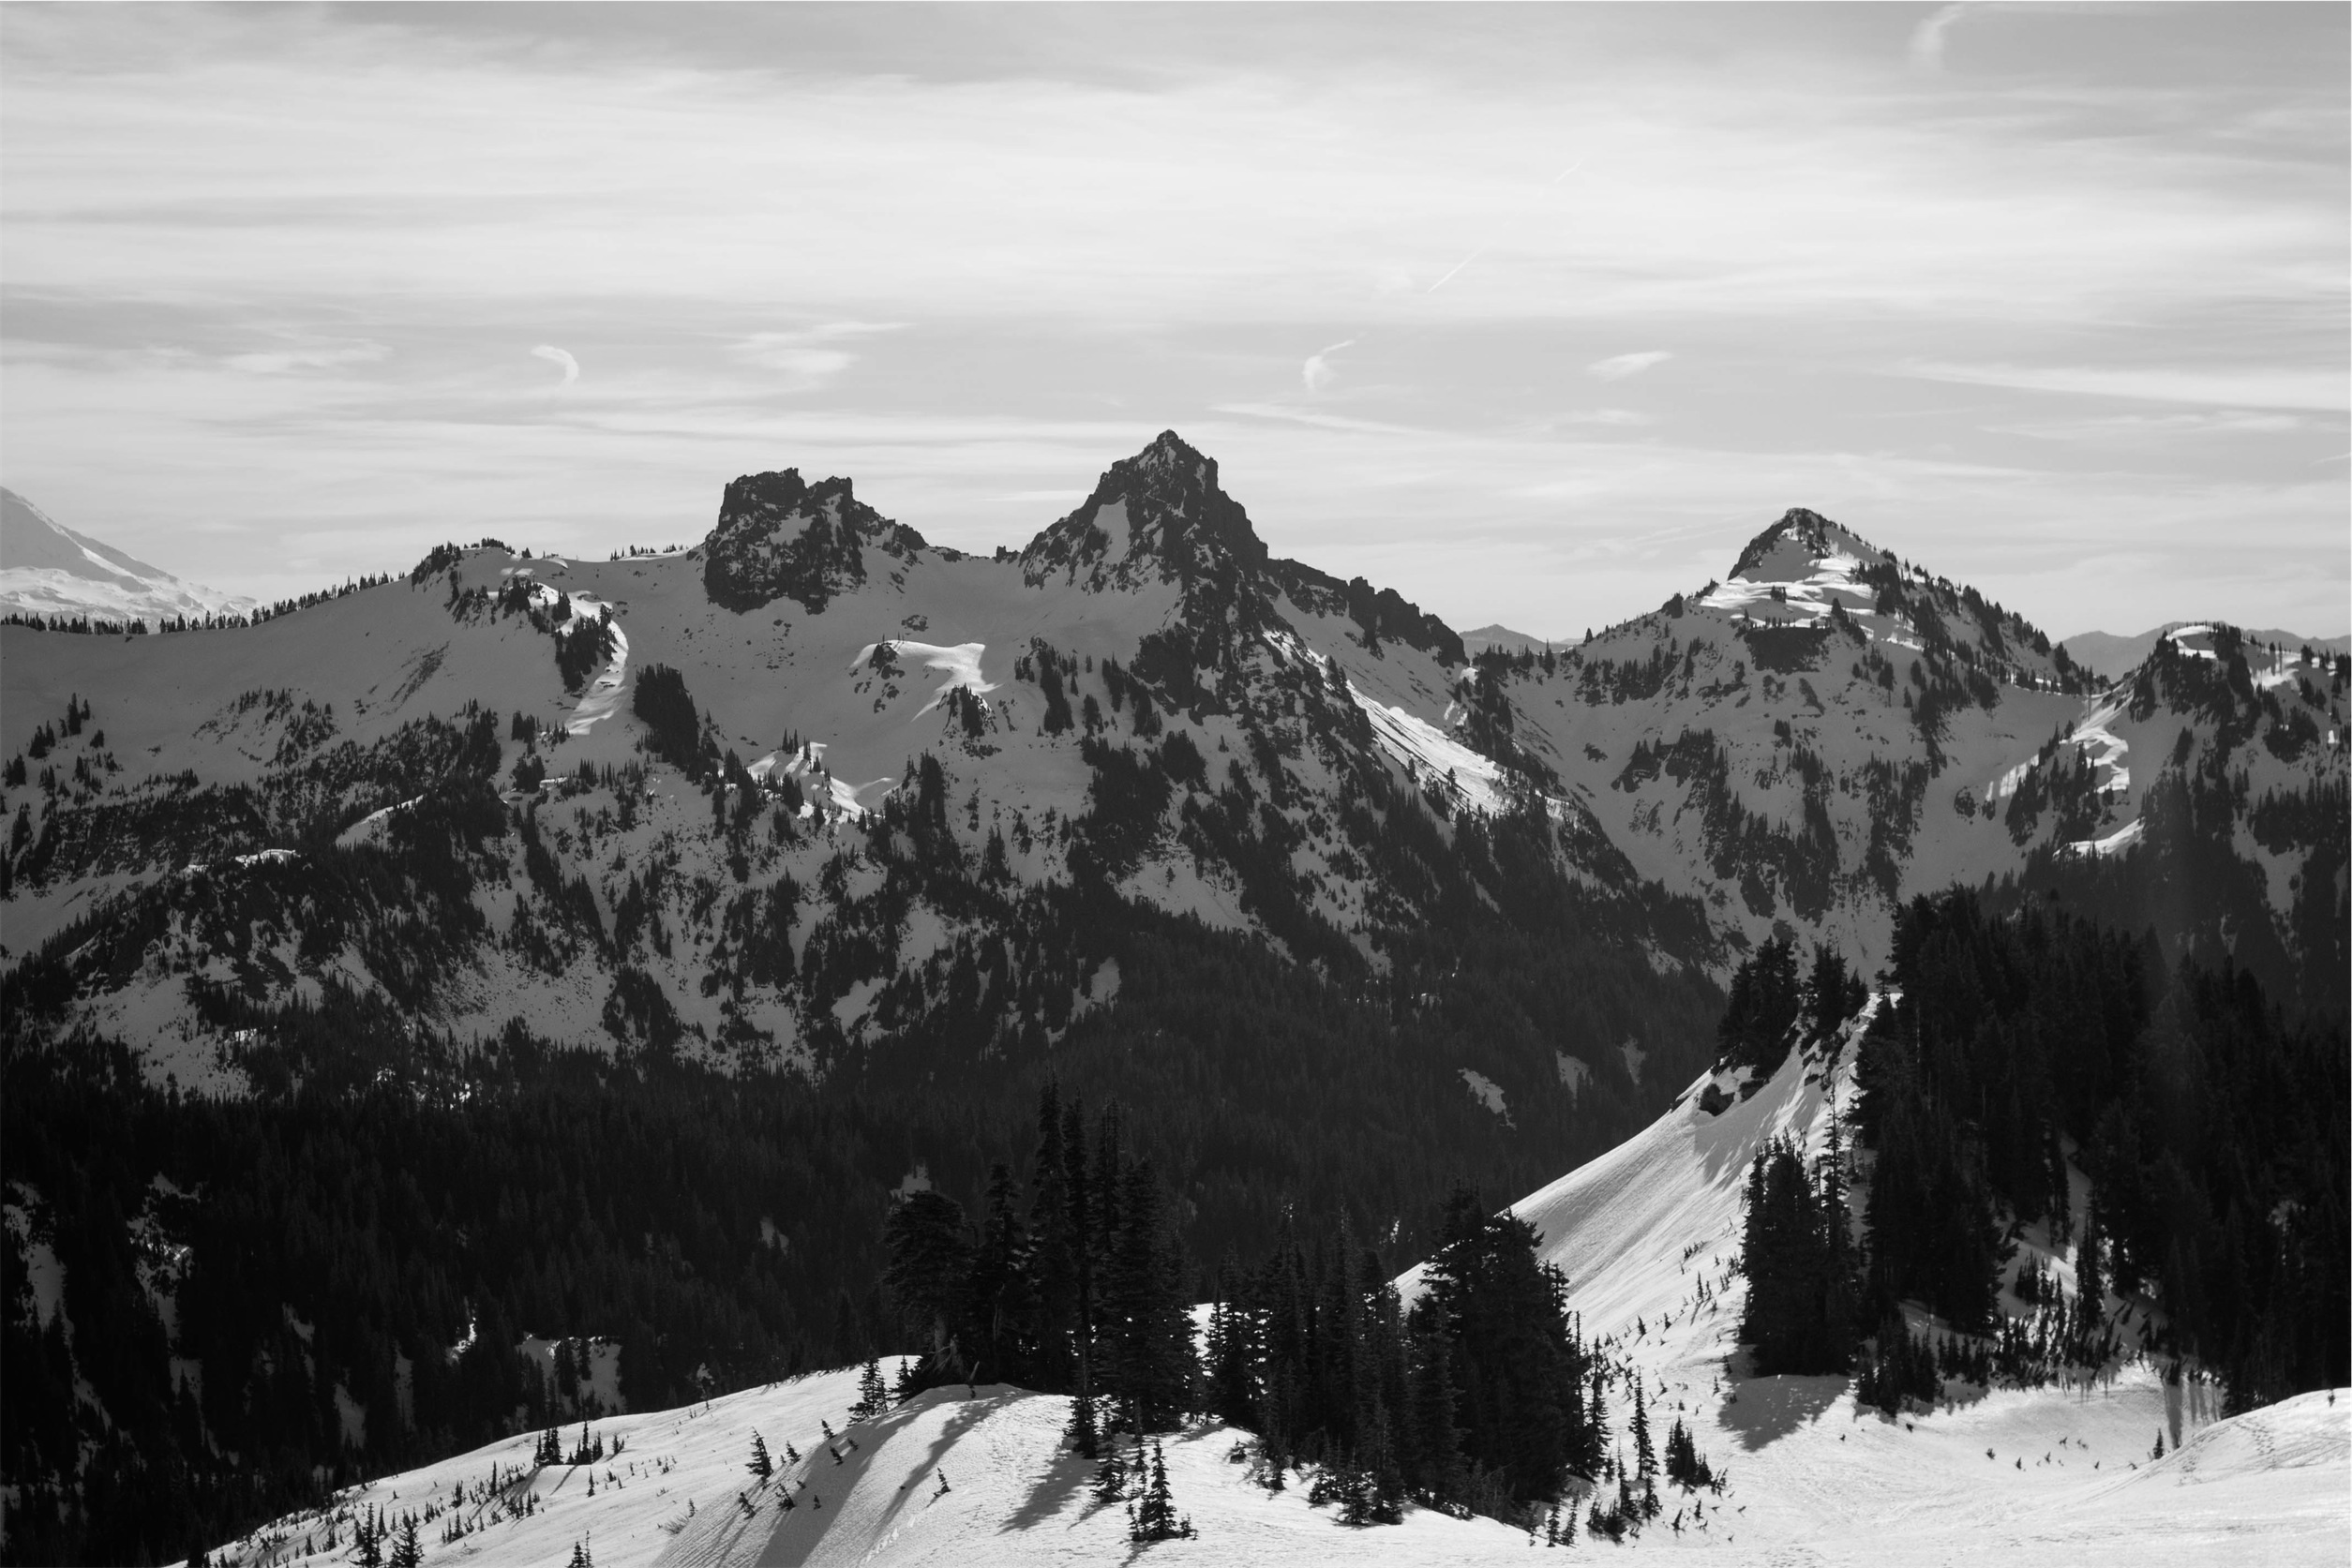 Free Images : landscape, snow, winter, black and white, mountain ...